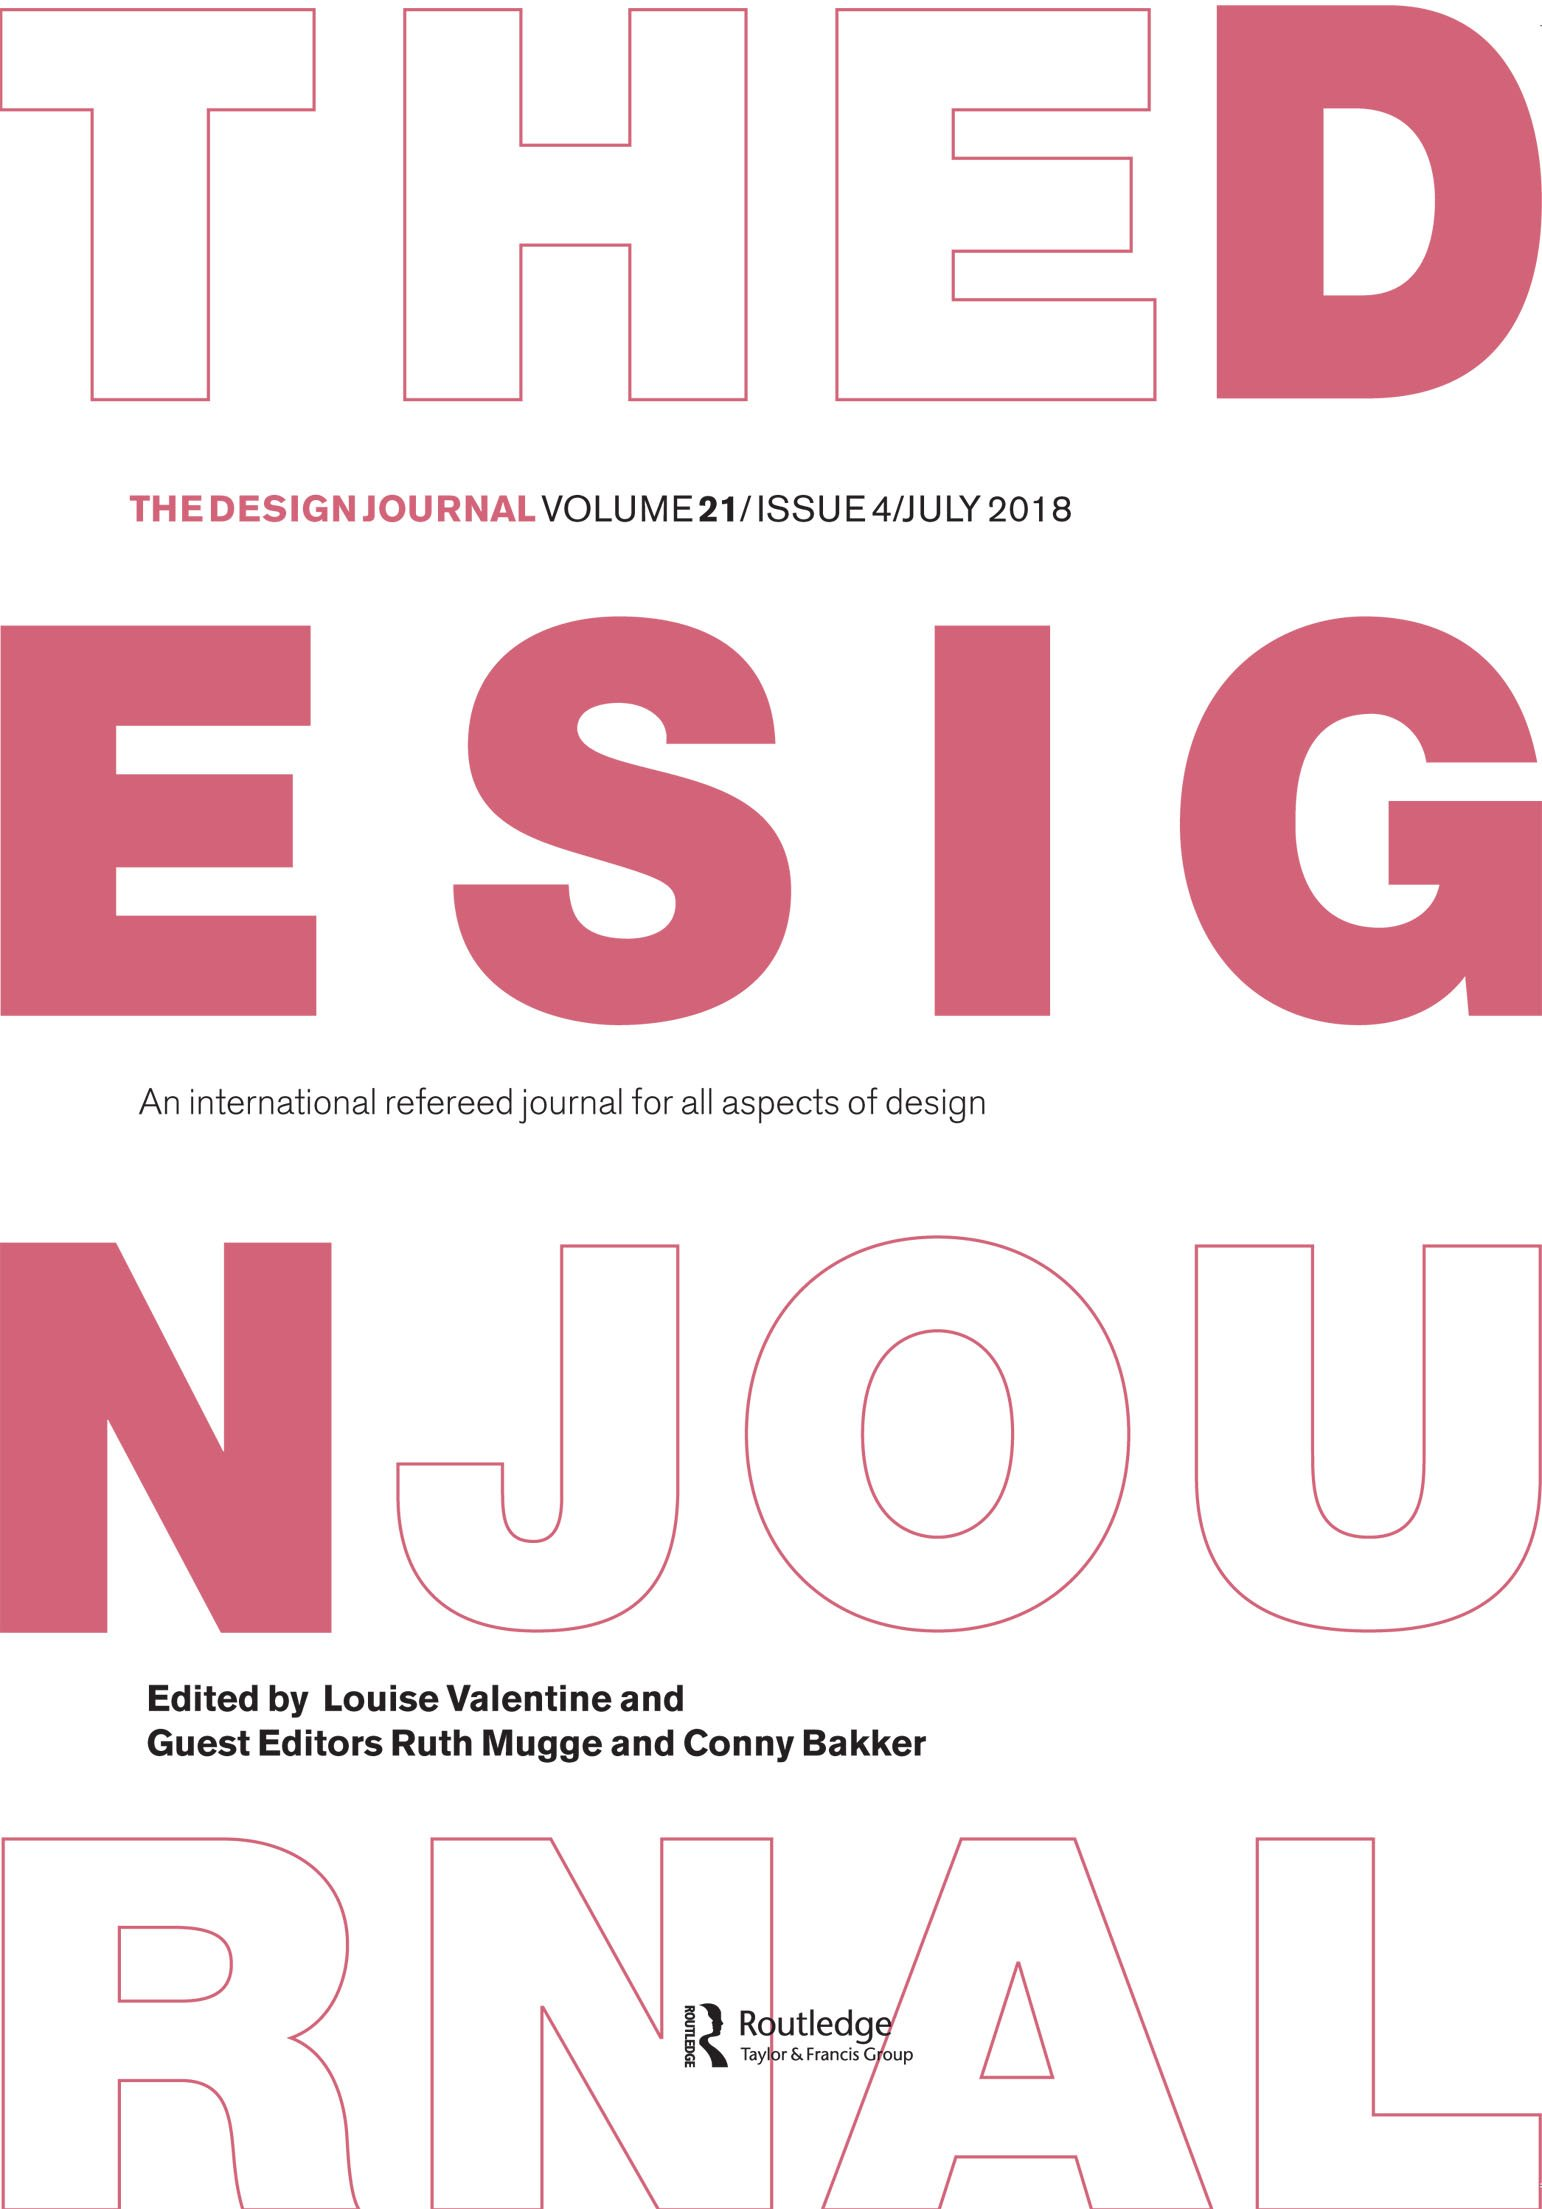 Full Article Human Centred Design Of Products And Services For The Circular Economy A Review